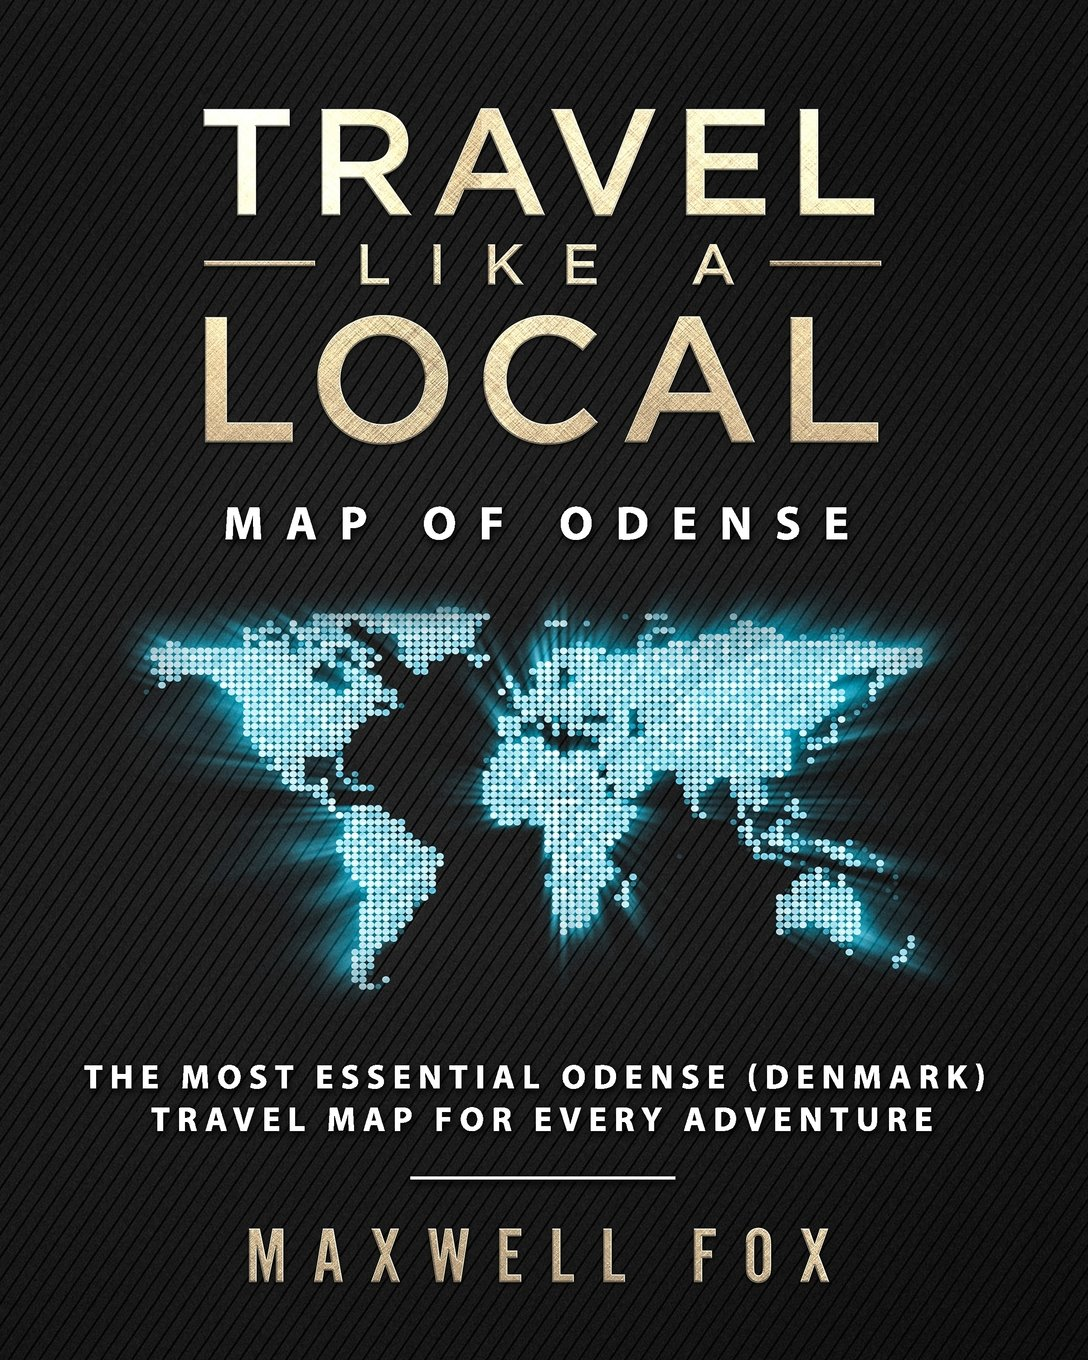 Travel Like a Local - Map of Odense: The Most Essential Odense (Denmark) Travel Map for Every Adventure pdf